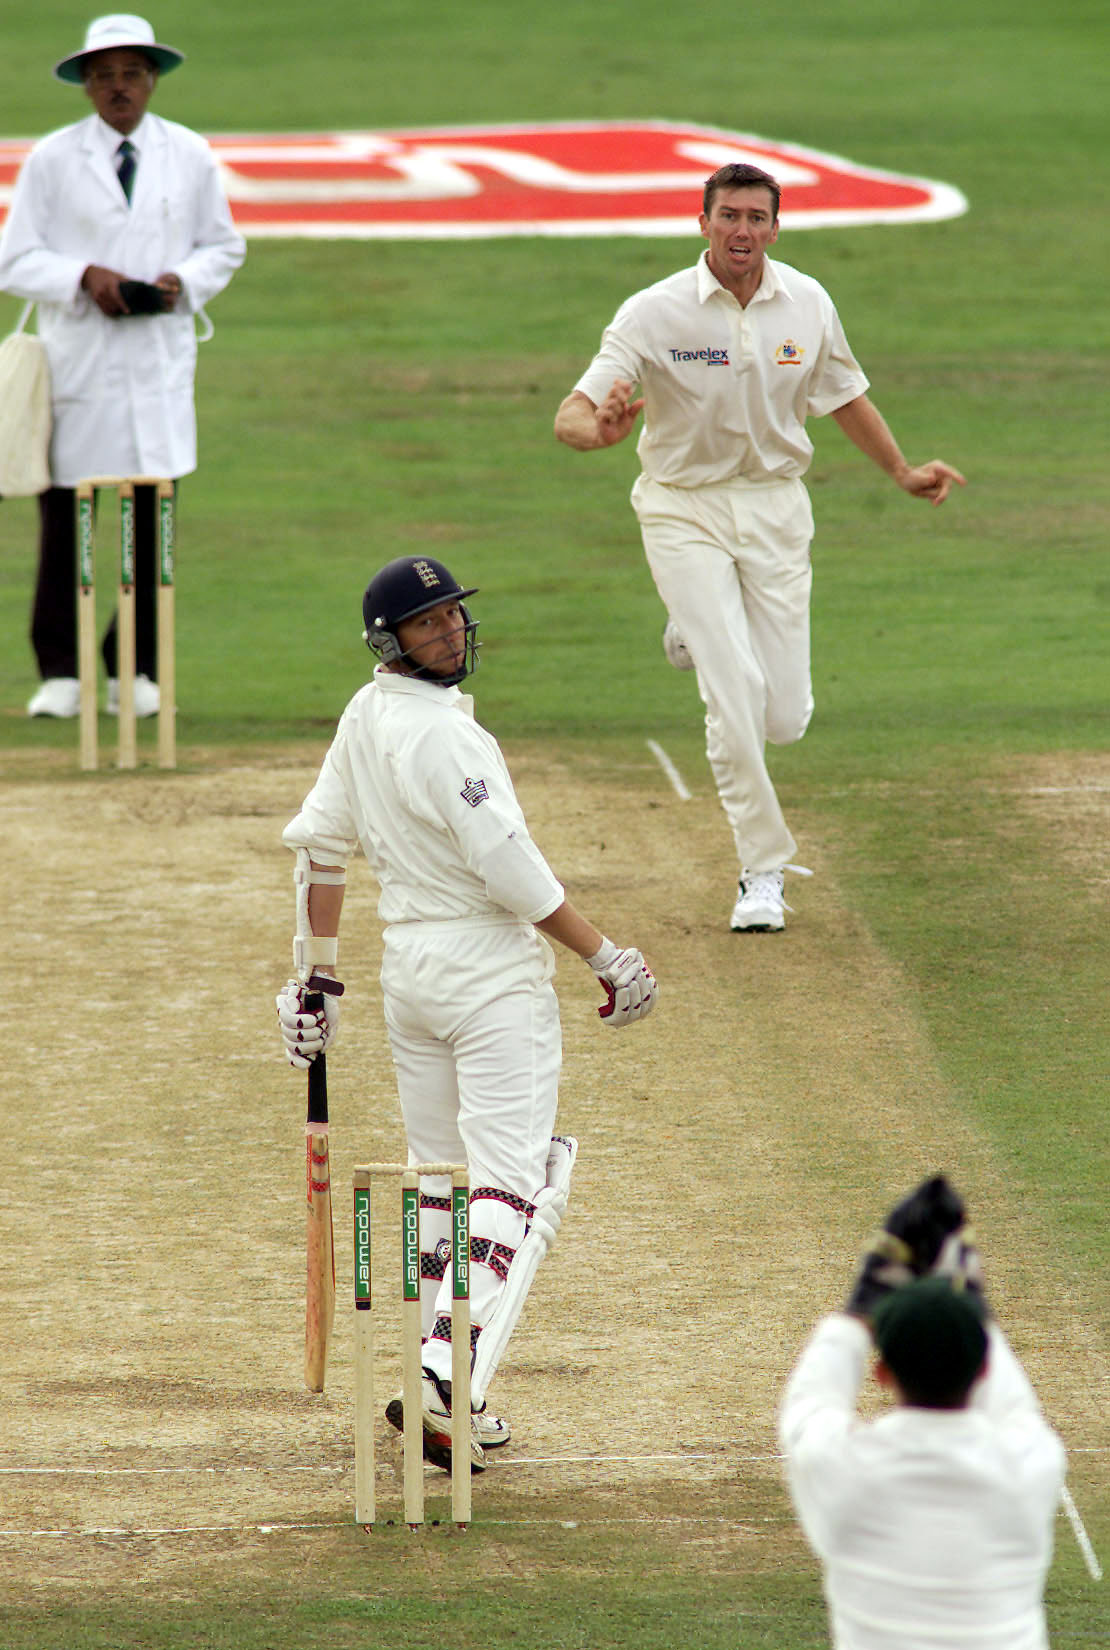 No. 18: McGrath gets Atherton c Gilchrist, the second of two identical dismissals in the 2001 Headingley Test